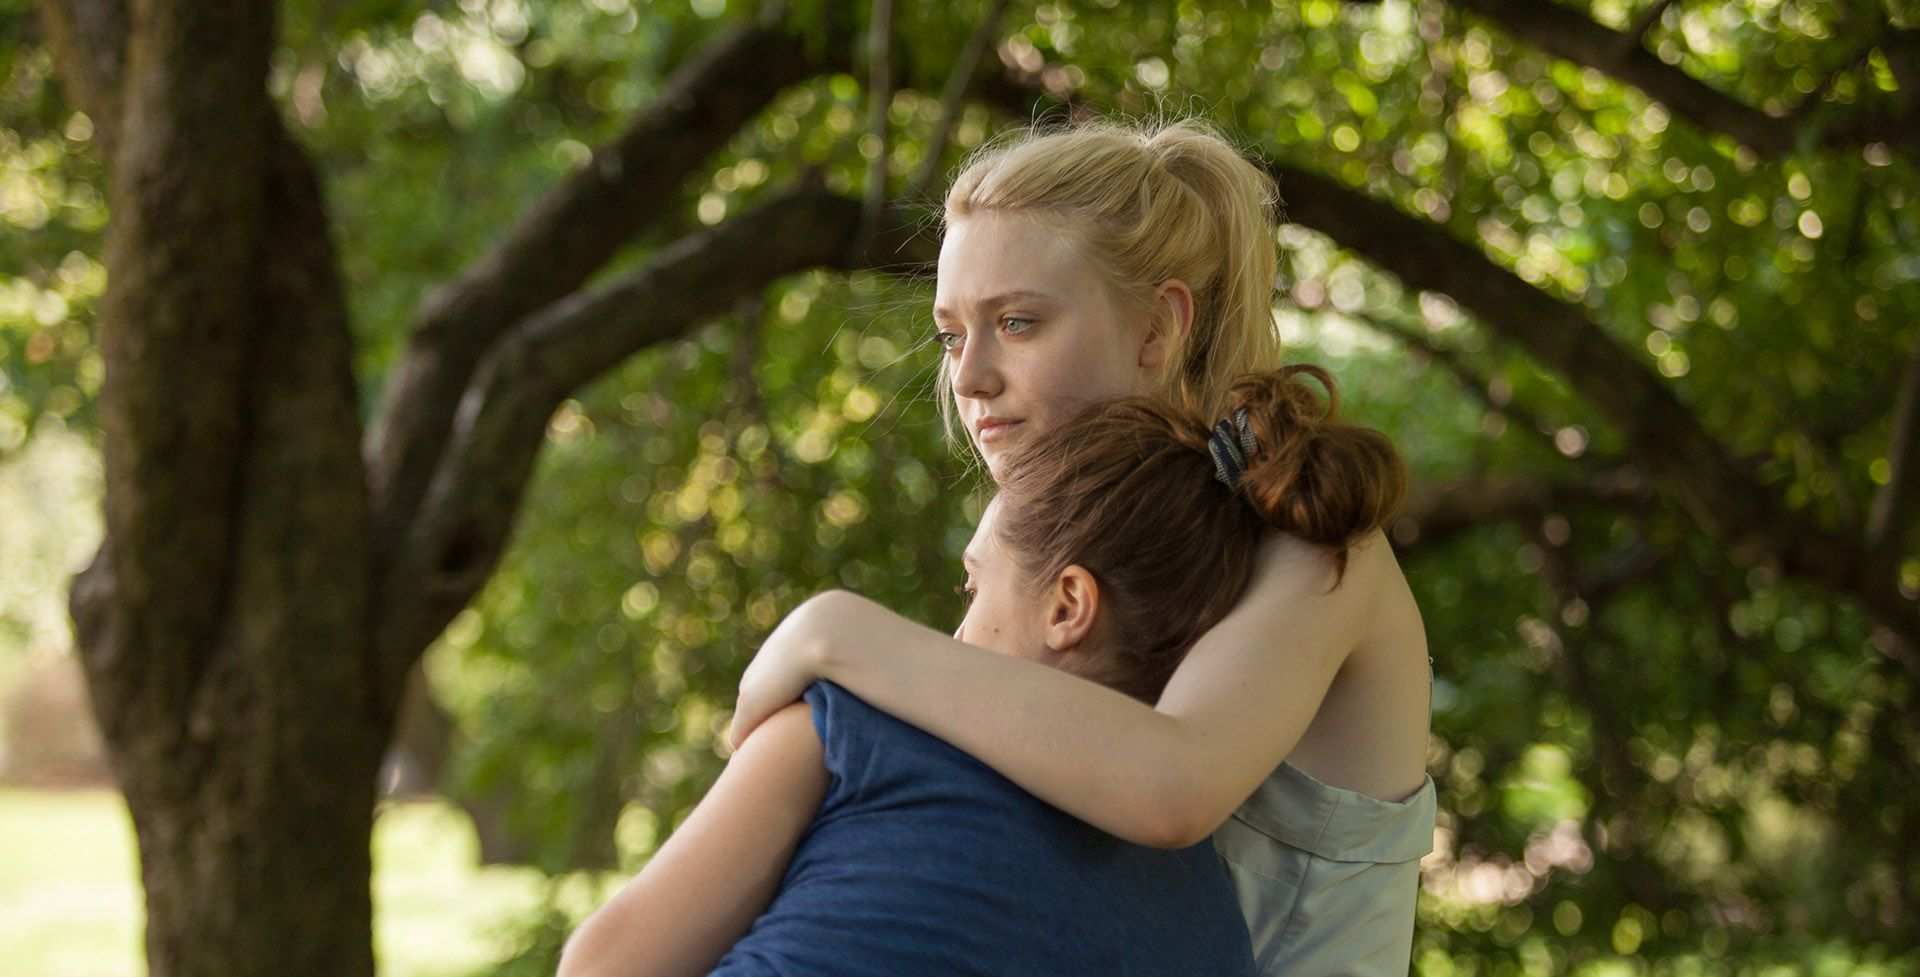 An image from Very Good Girls